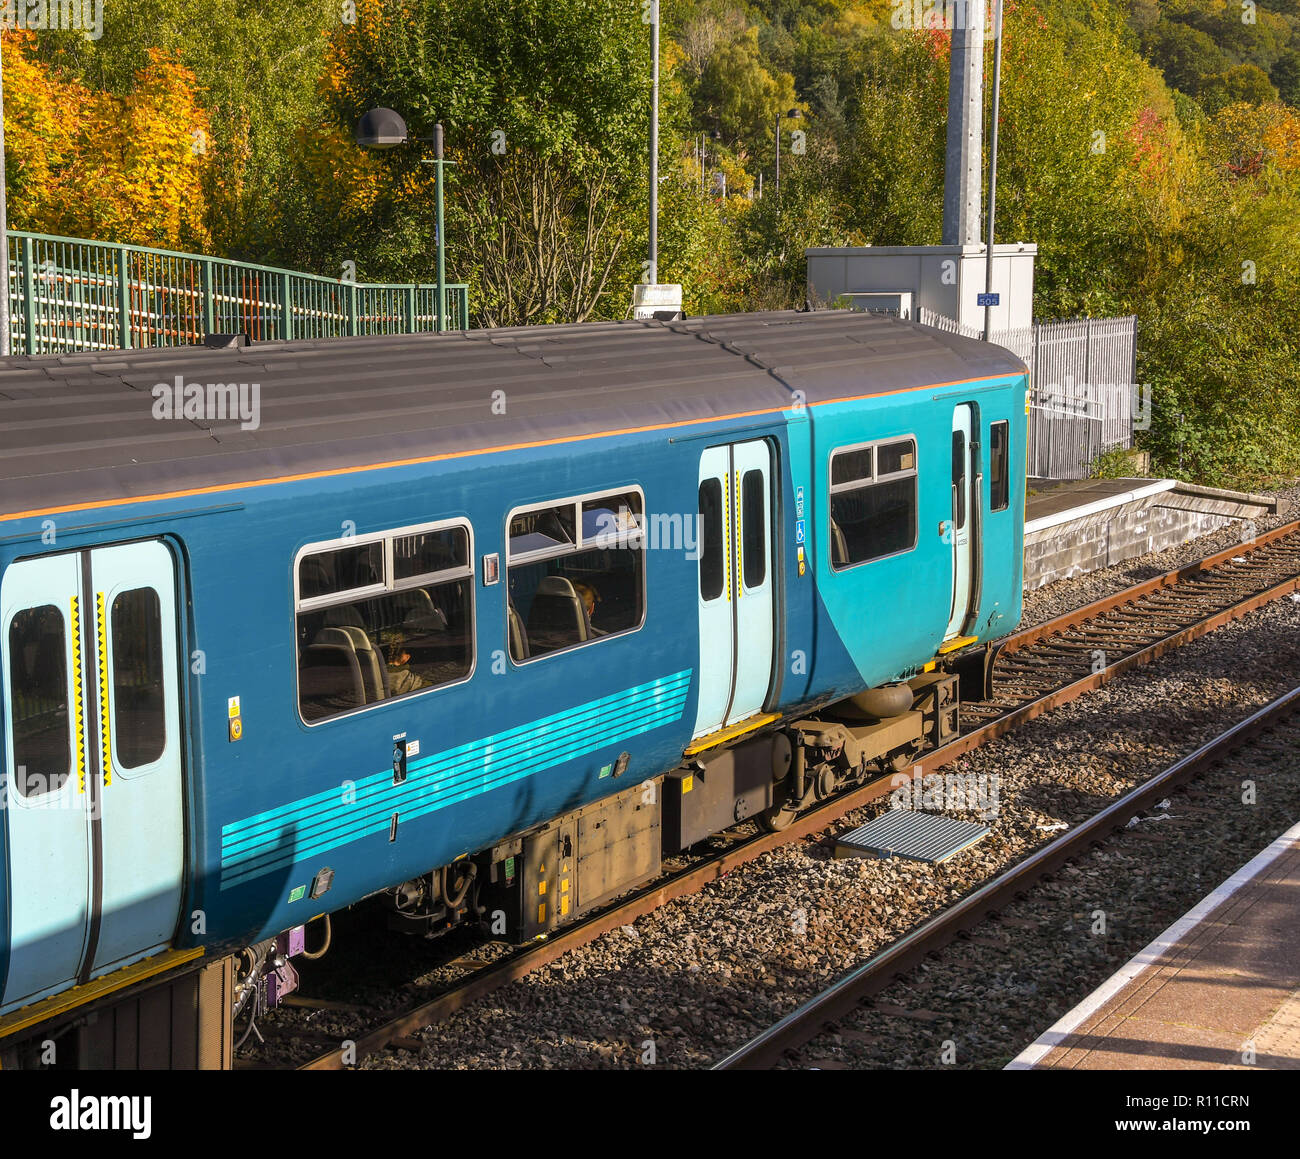 MOUNTAIN ASH, WALES - OCTOBER 2018: 'Sprinter' diesel commuter train at Mountain Ash railway station. - Stock Image